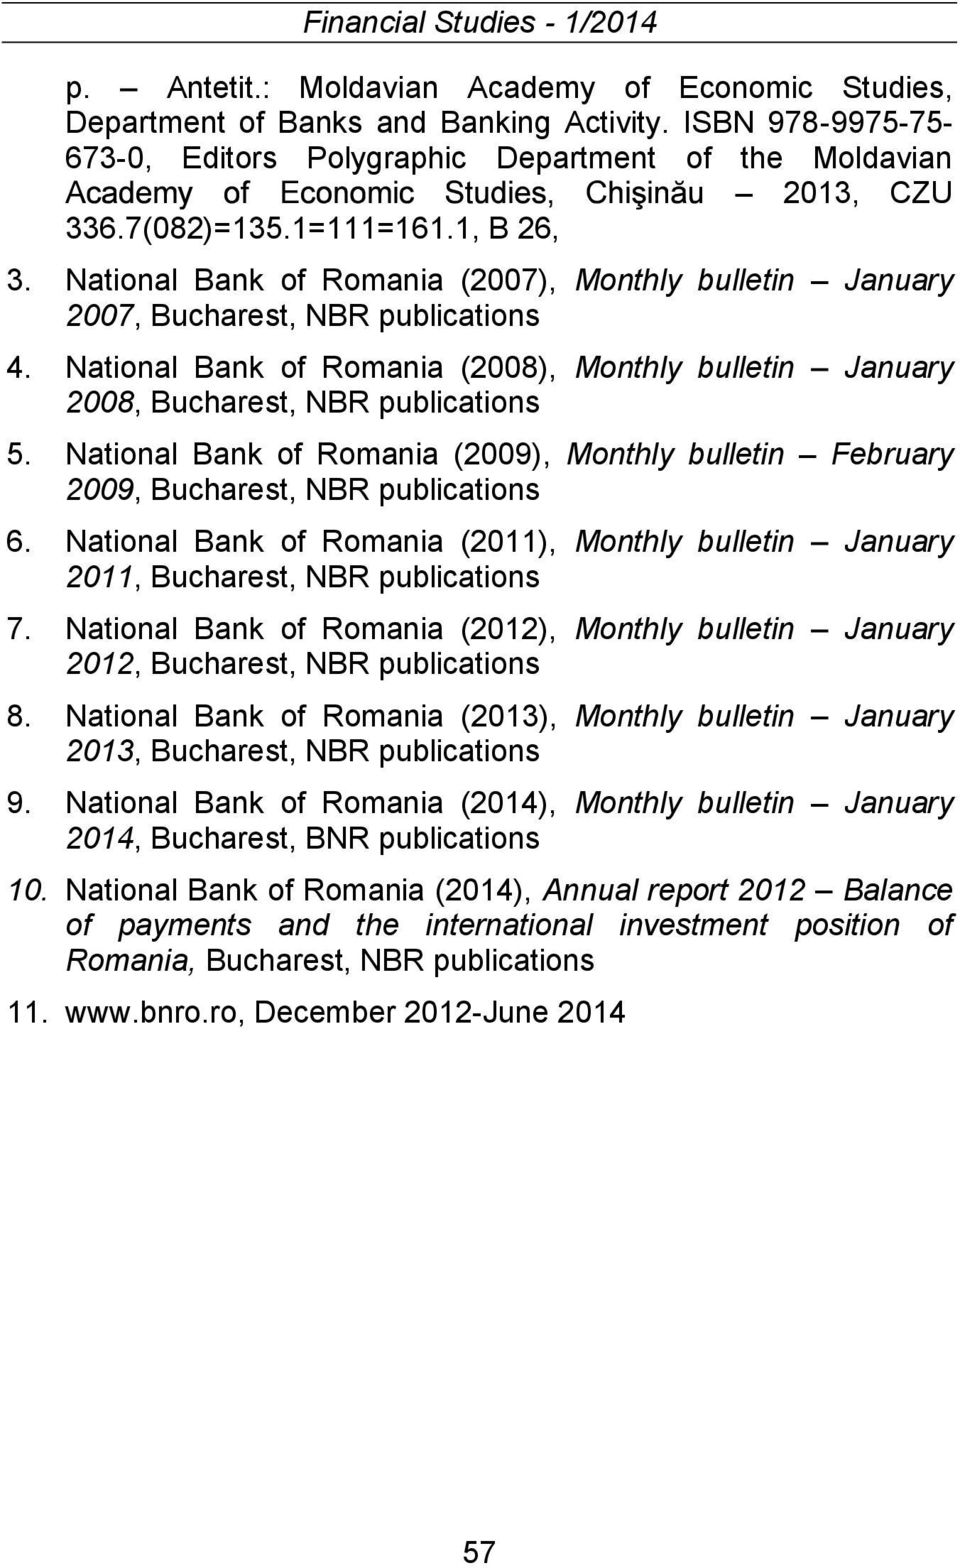 National Bank of Romania (2008), Monthly bulletin January 2008, Bucharest, NBR publications 5. National Bank of Romania (2009), Monthly bulletin February 2009, Bucharest, NBR publications 6.